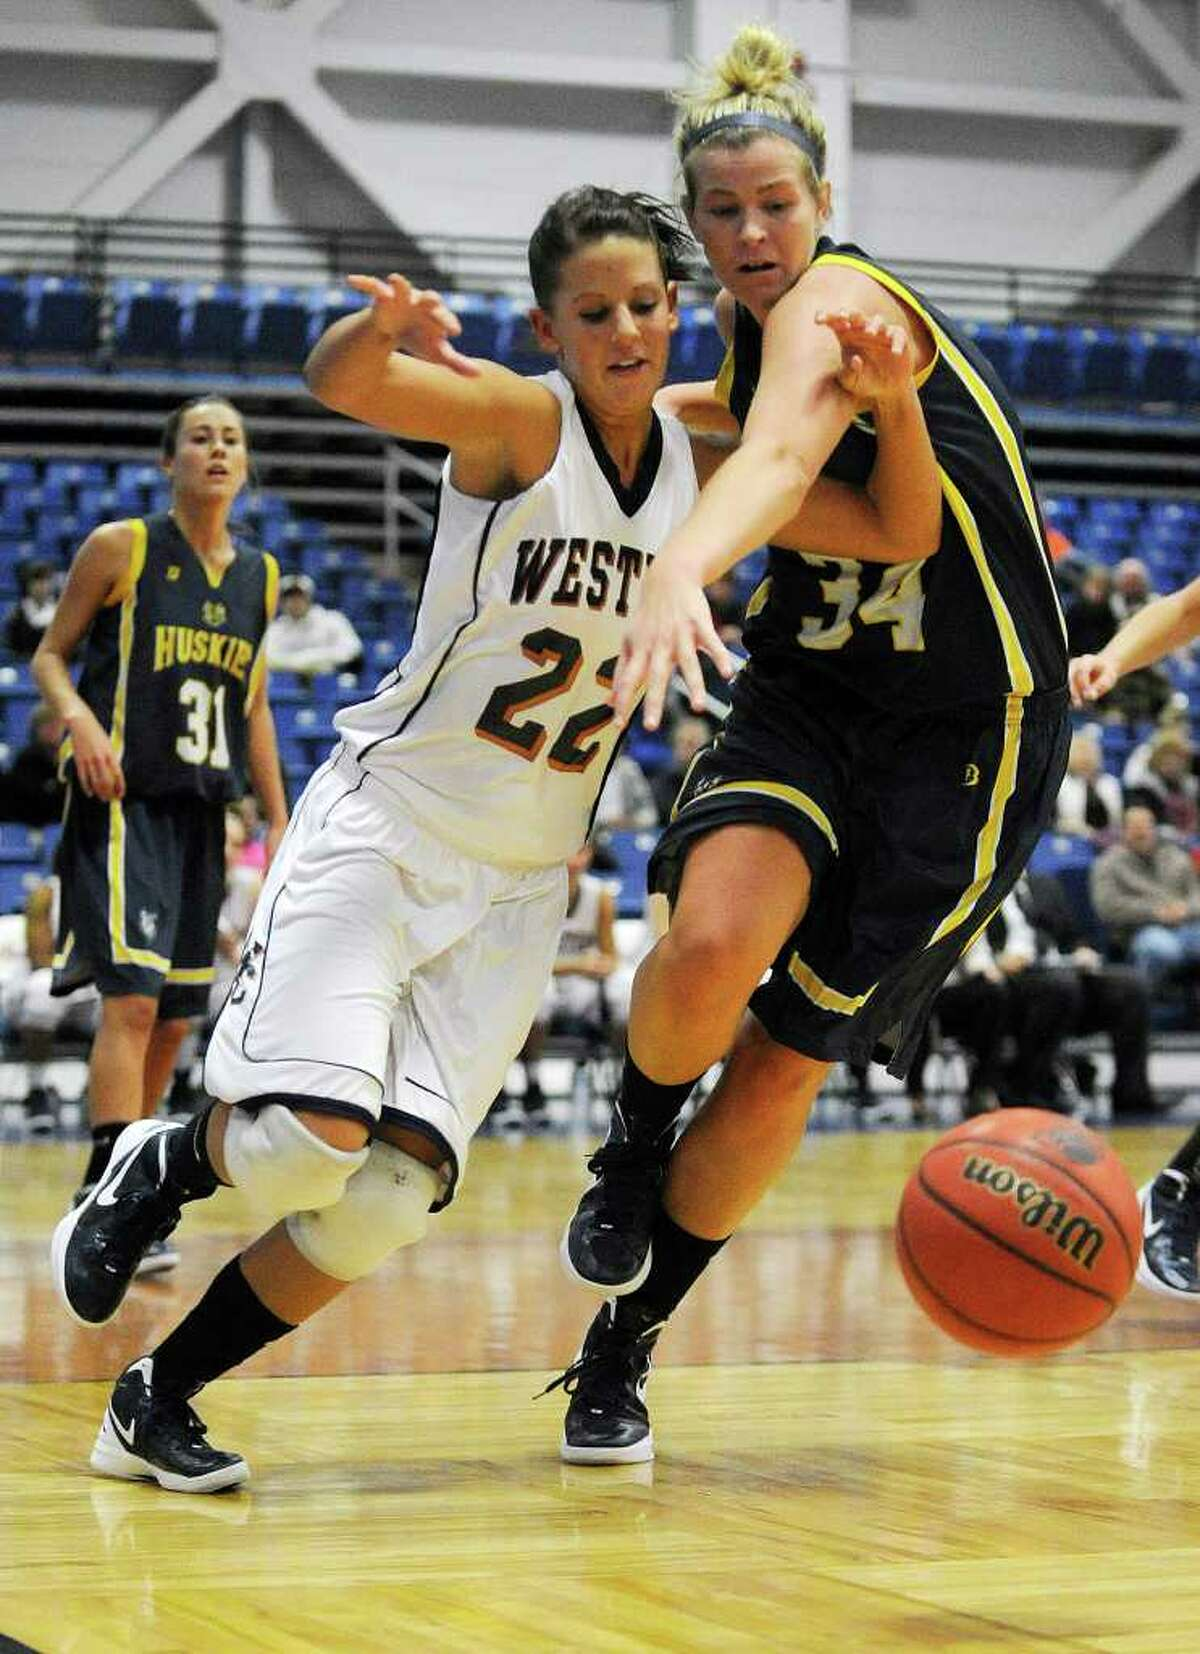 Western Connecticut State University's Carly Murphy battles University of Southern Maine's Courtney Cochran for the loose ball during their game at the O'Neill Center on WestConn's Westside campus on Saturday, Dec. 10, 2011. Southern Maine won 77-76 in overtime.